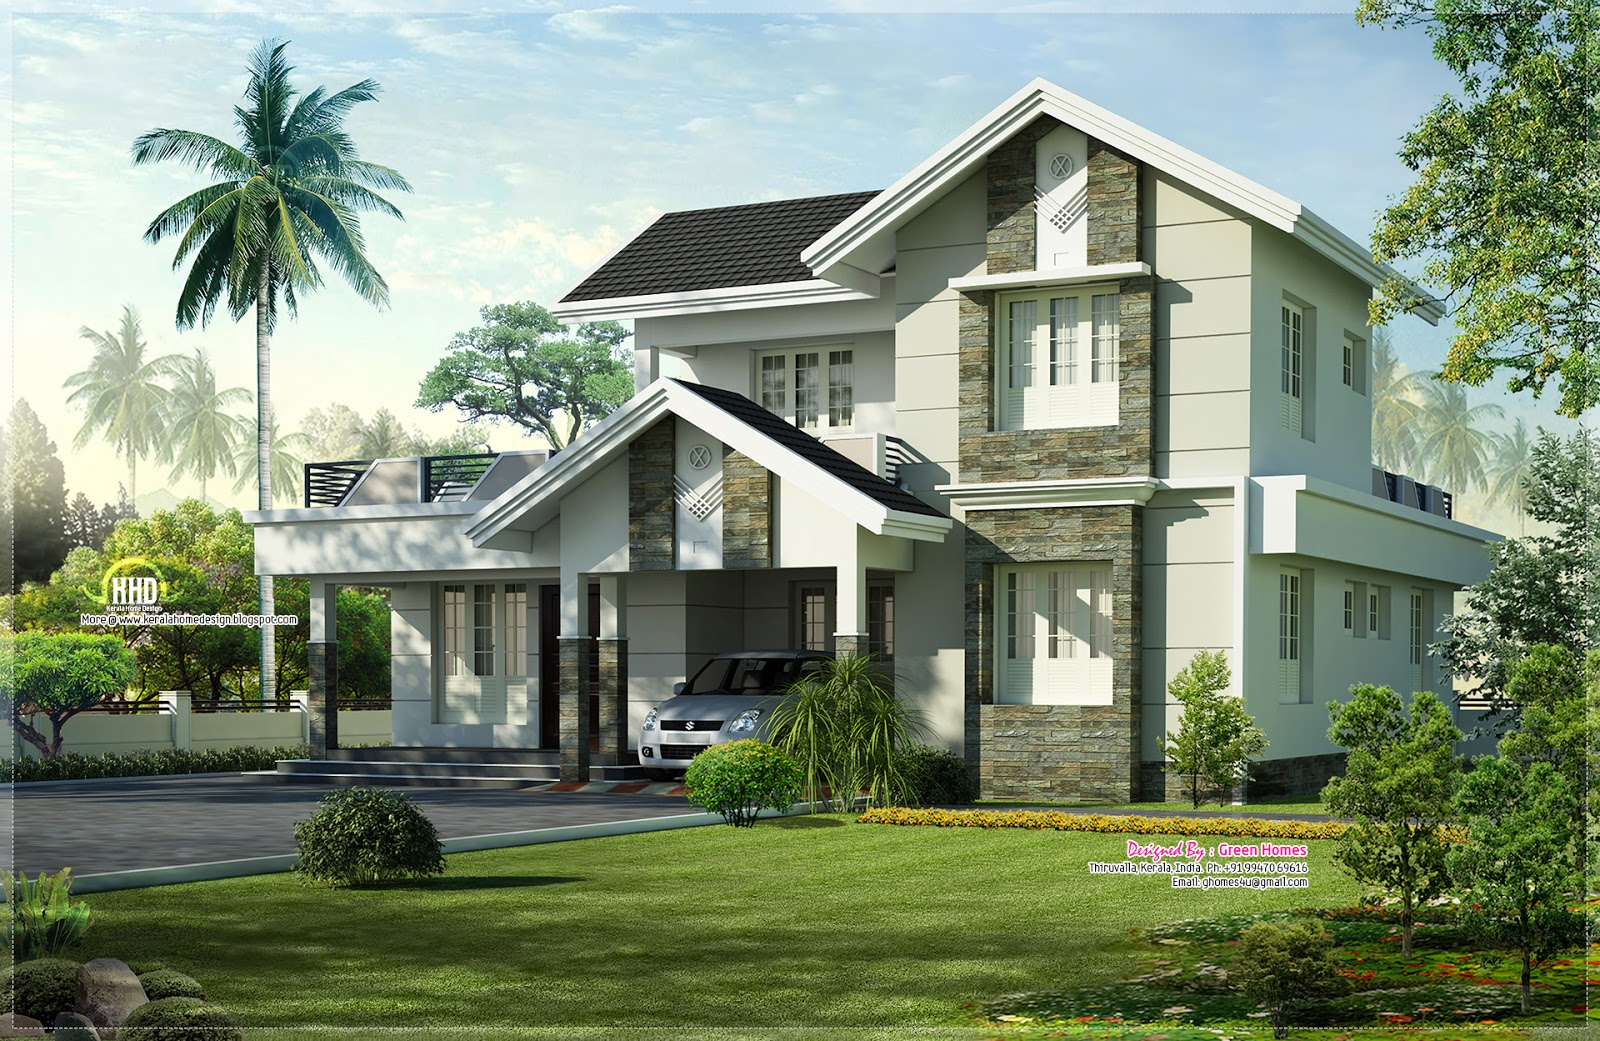 1975 nice home exterior design home kerala plans for Exterior design of small houses